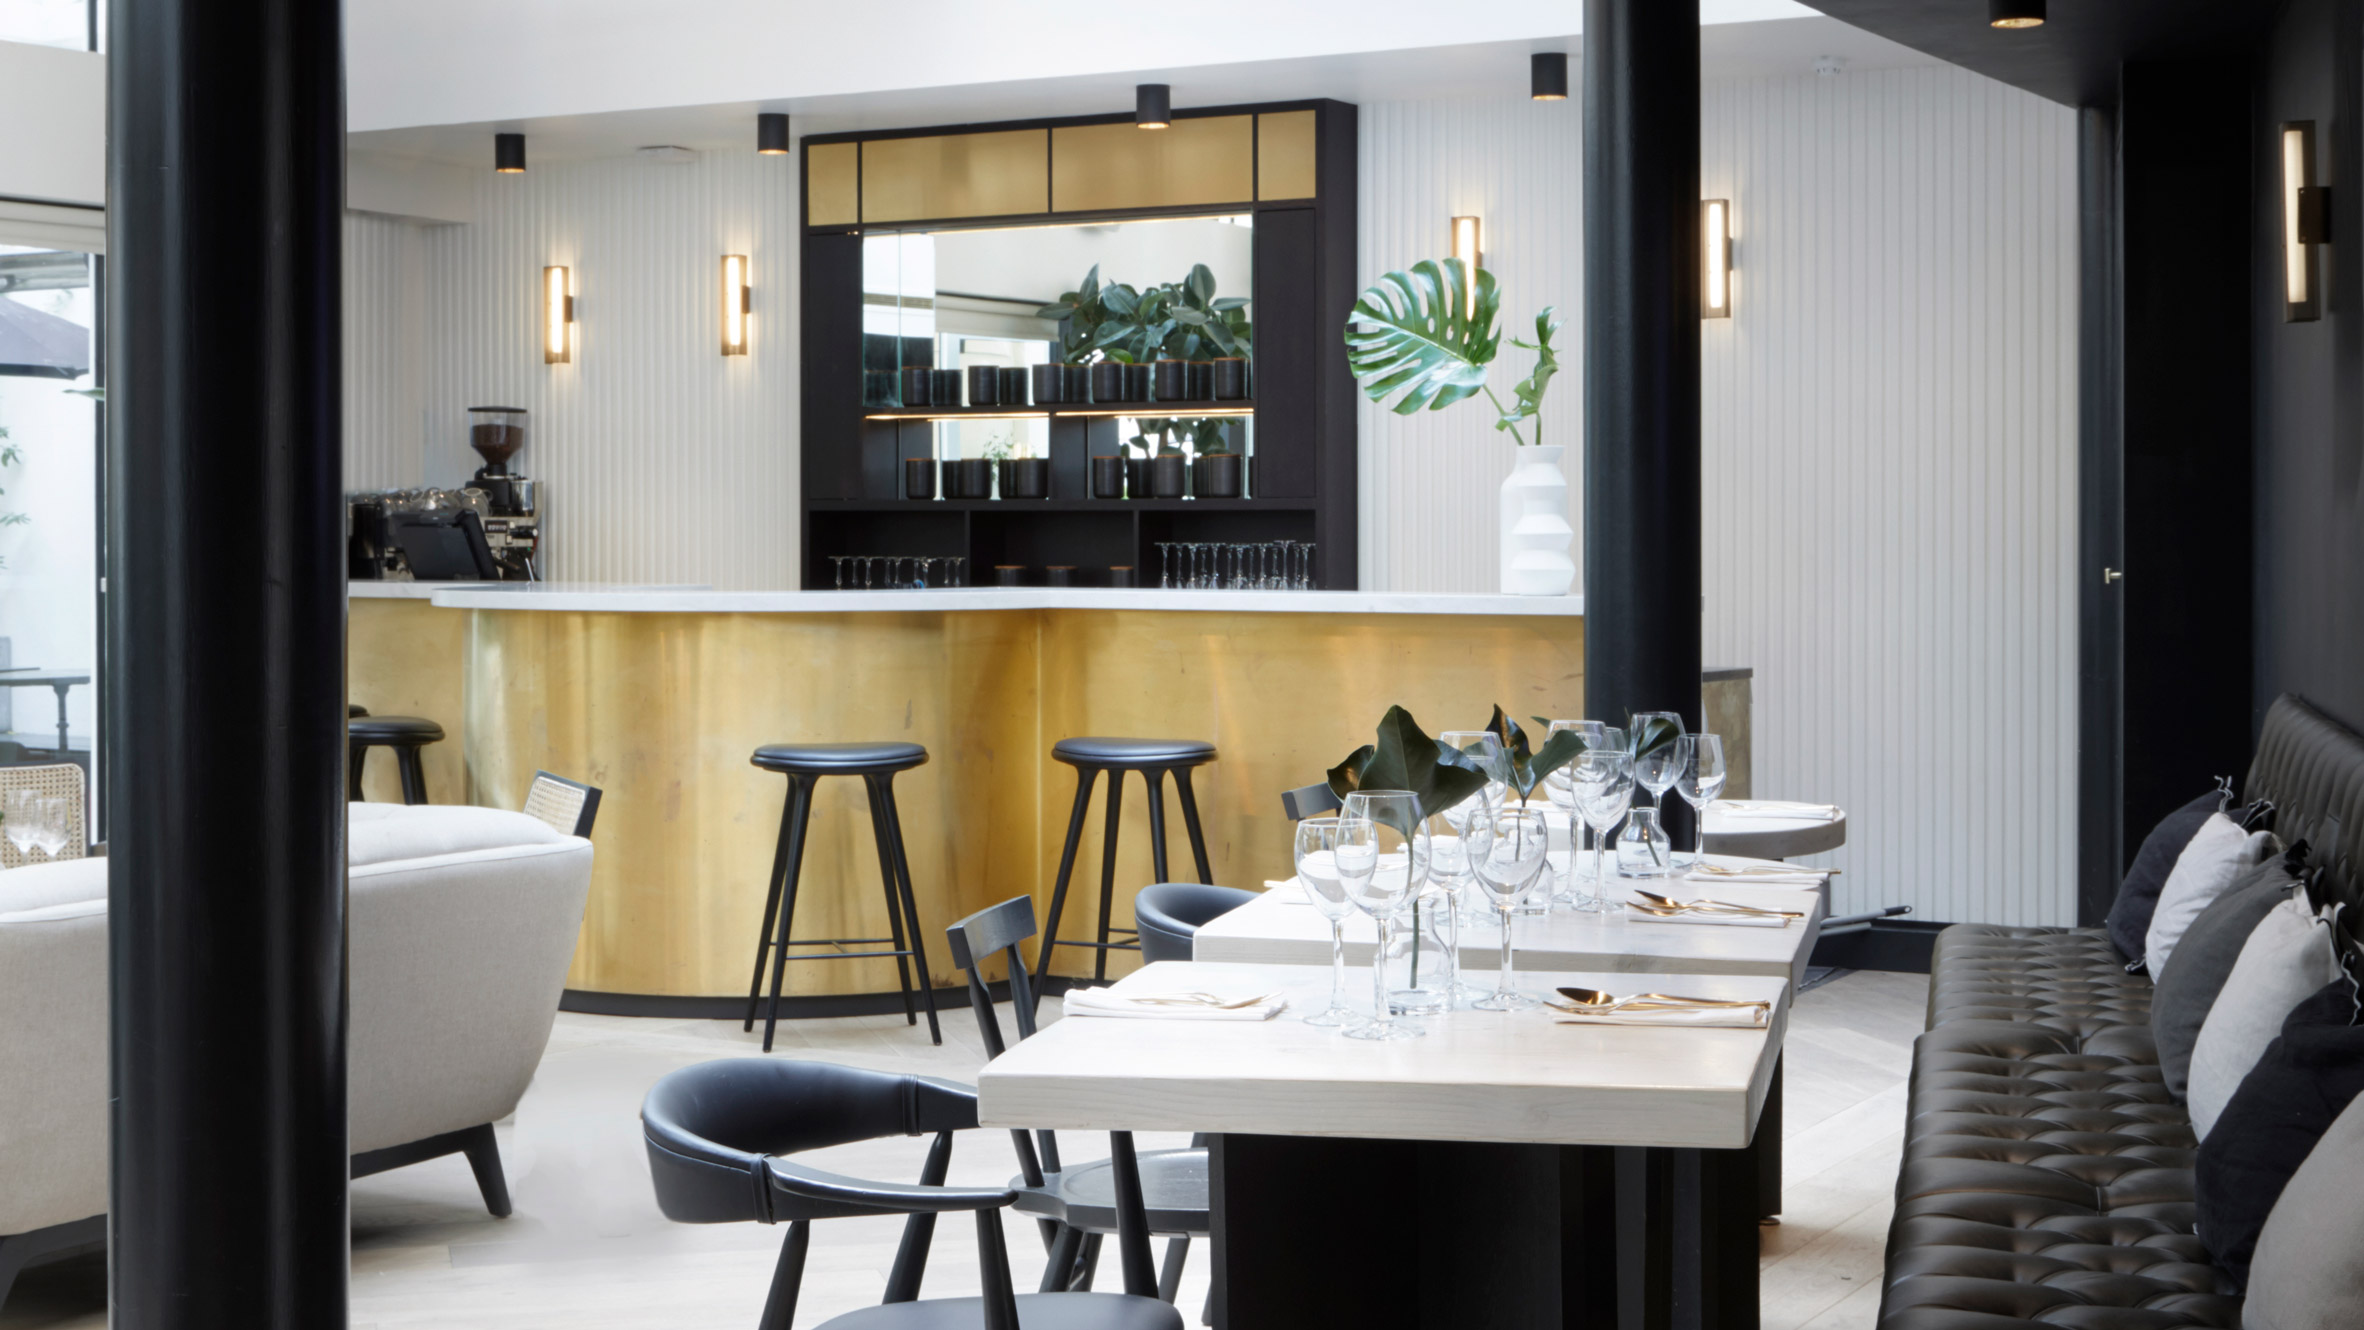 Dh liberty redesigns london hotel to hint at the owners love of plants